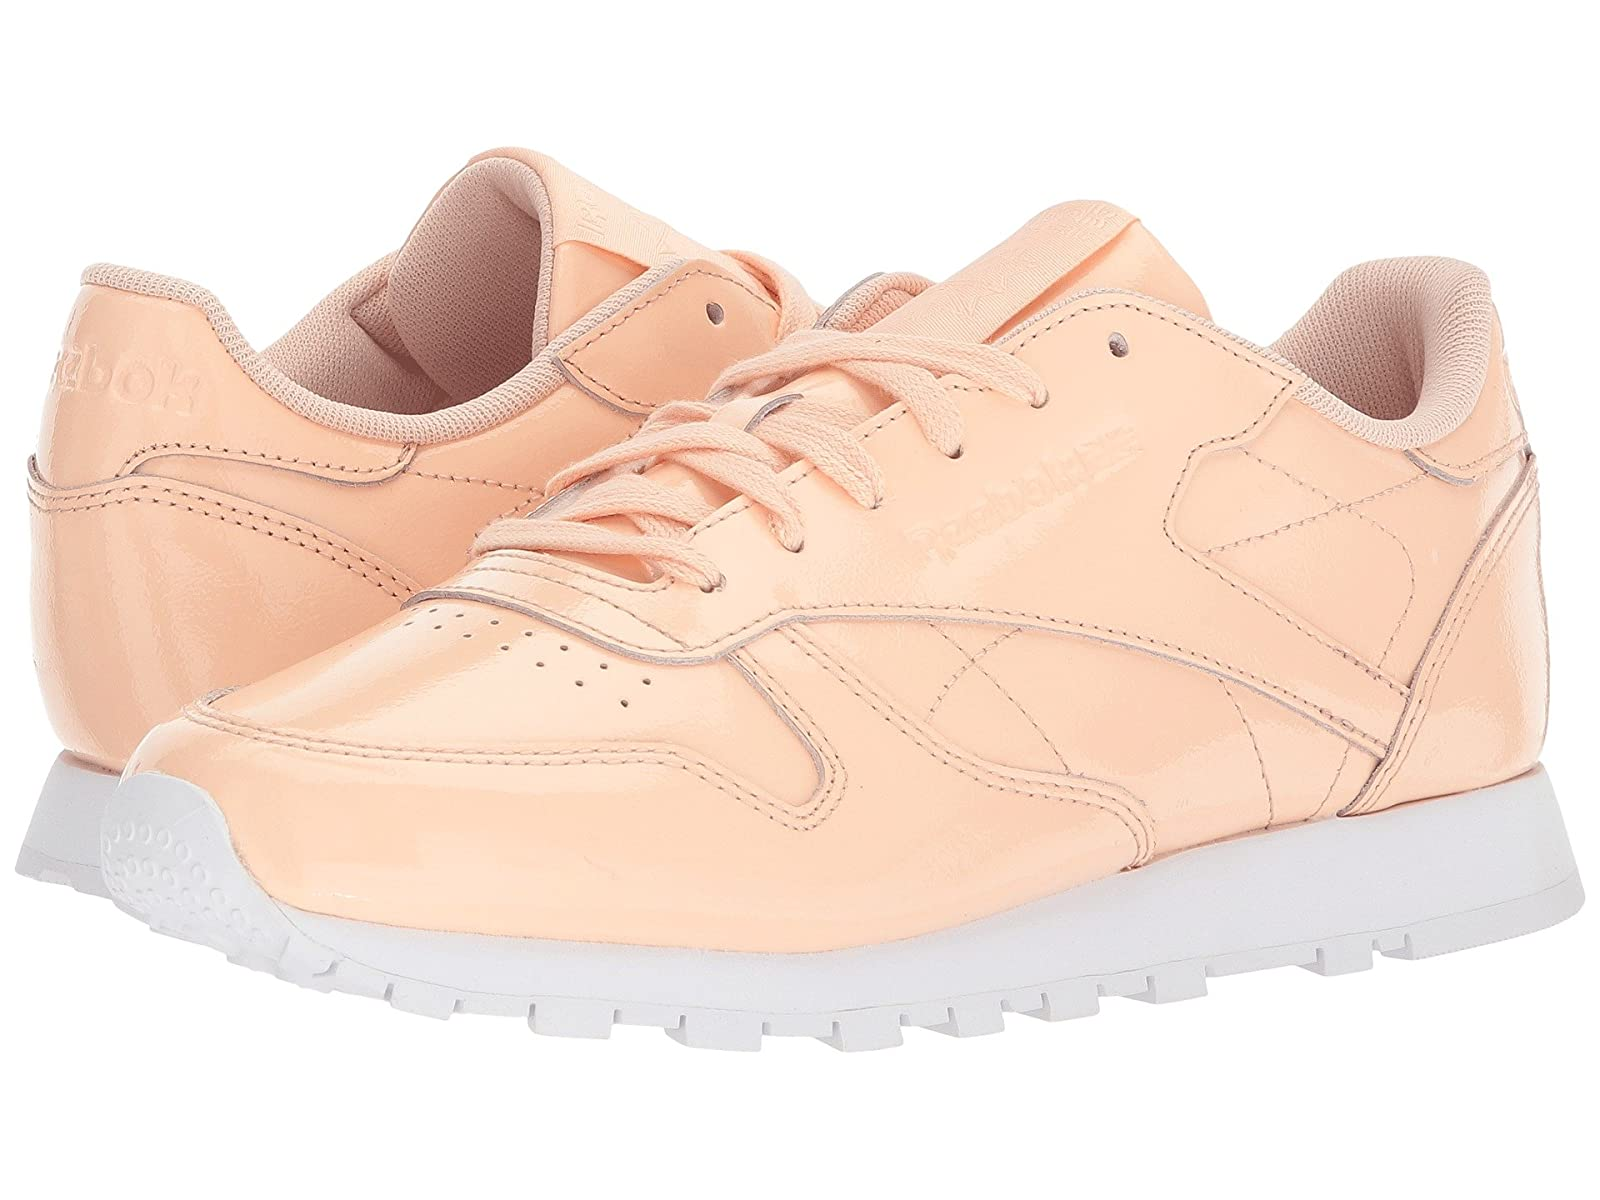 Reebok Lifestyle Classic Leather PatentCheap and distinctive eye-catching shoes